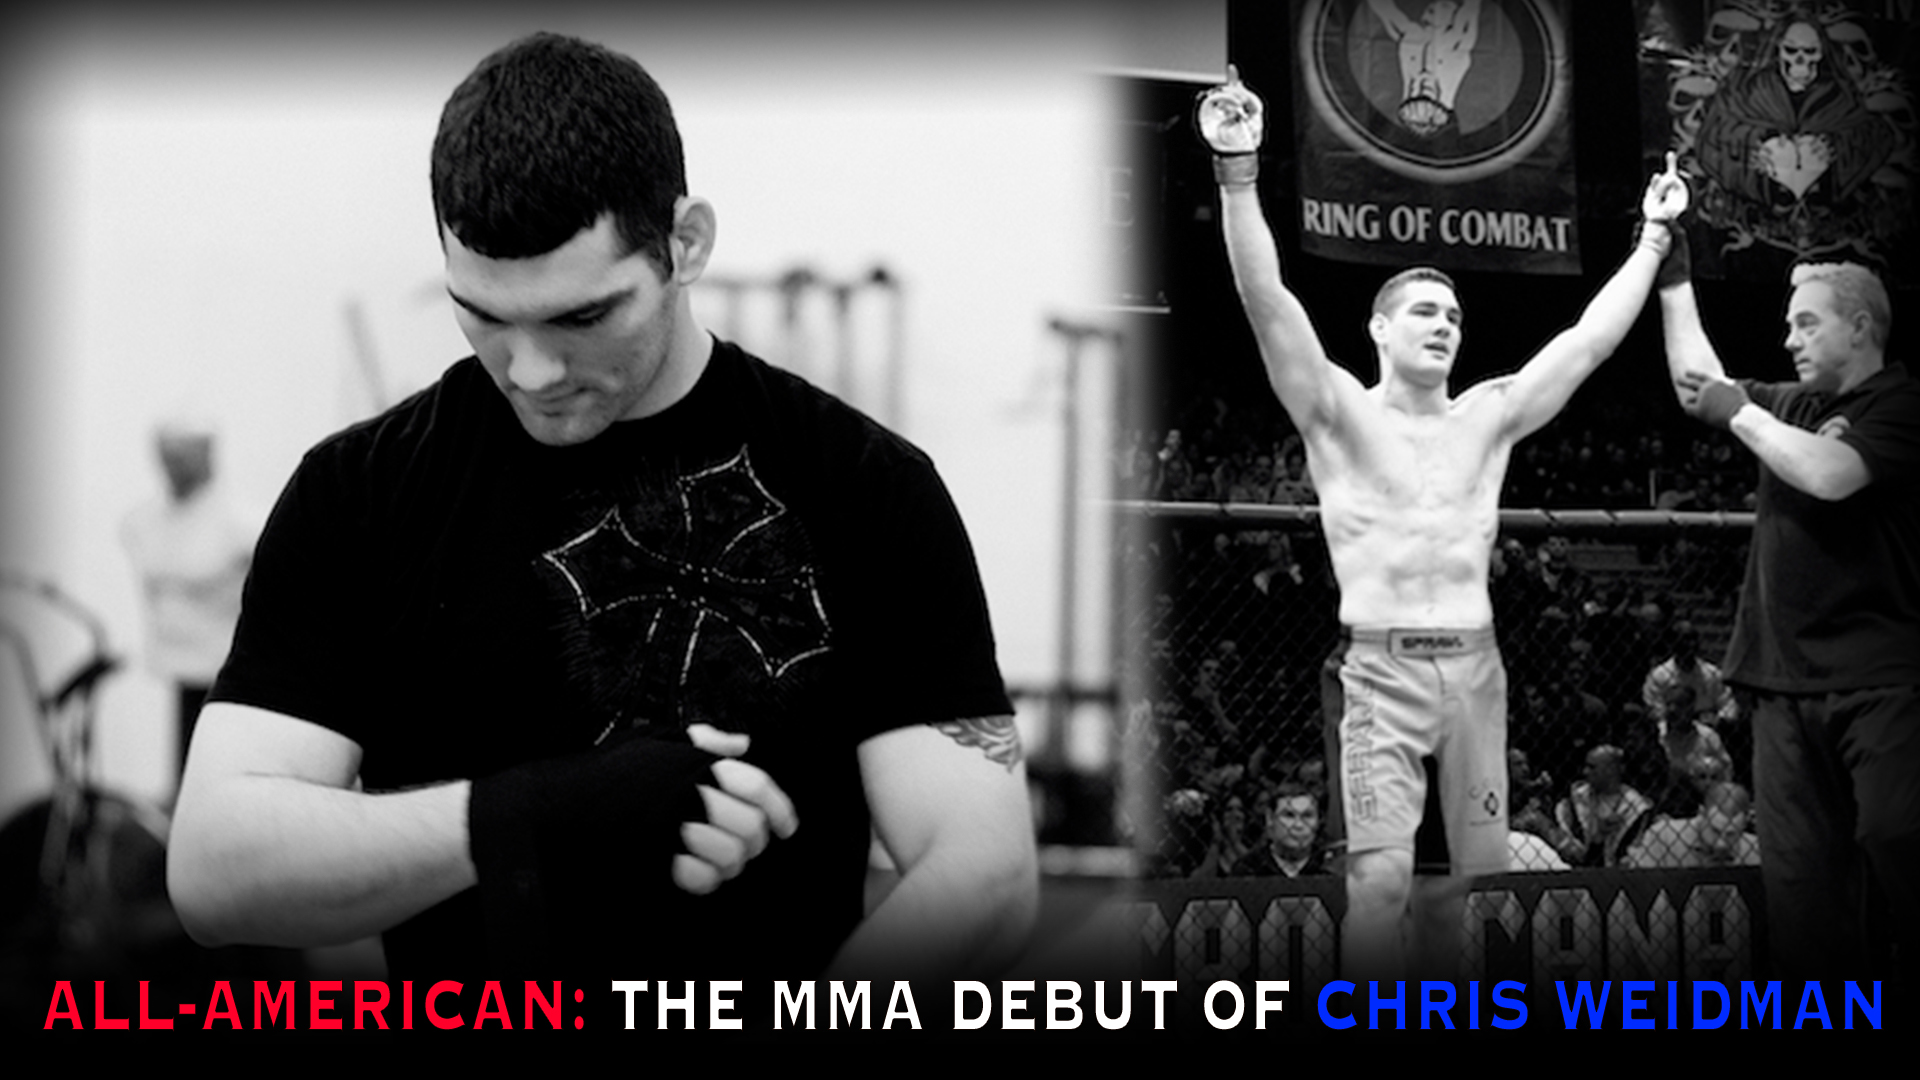 All-American: The MMA Debut of Chris Weidman